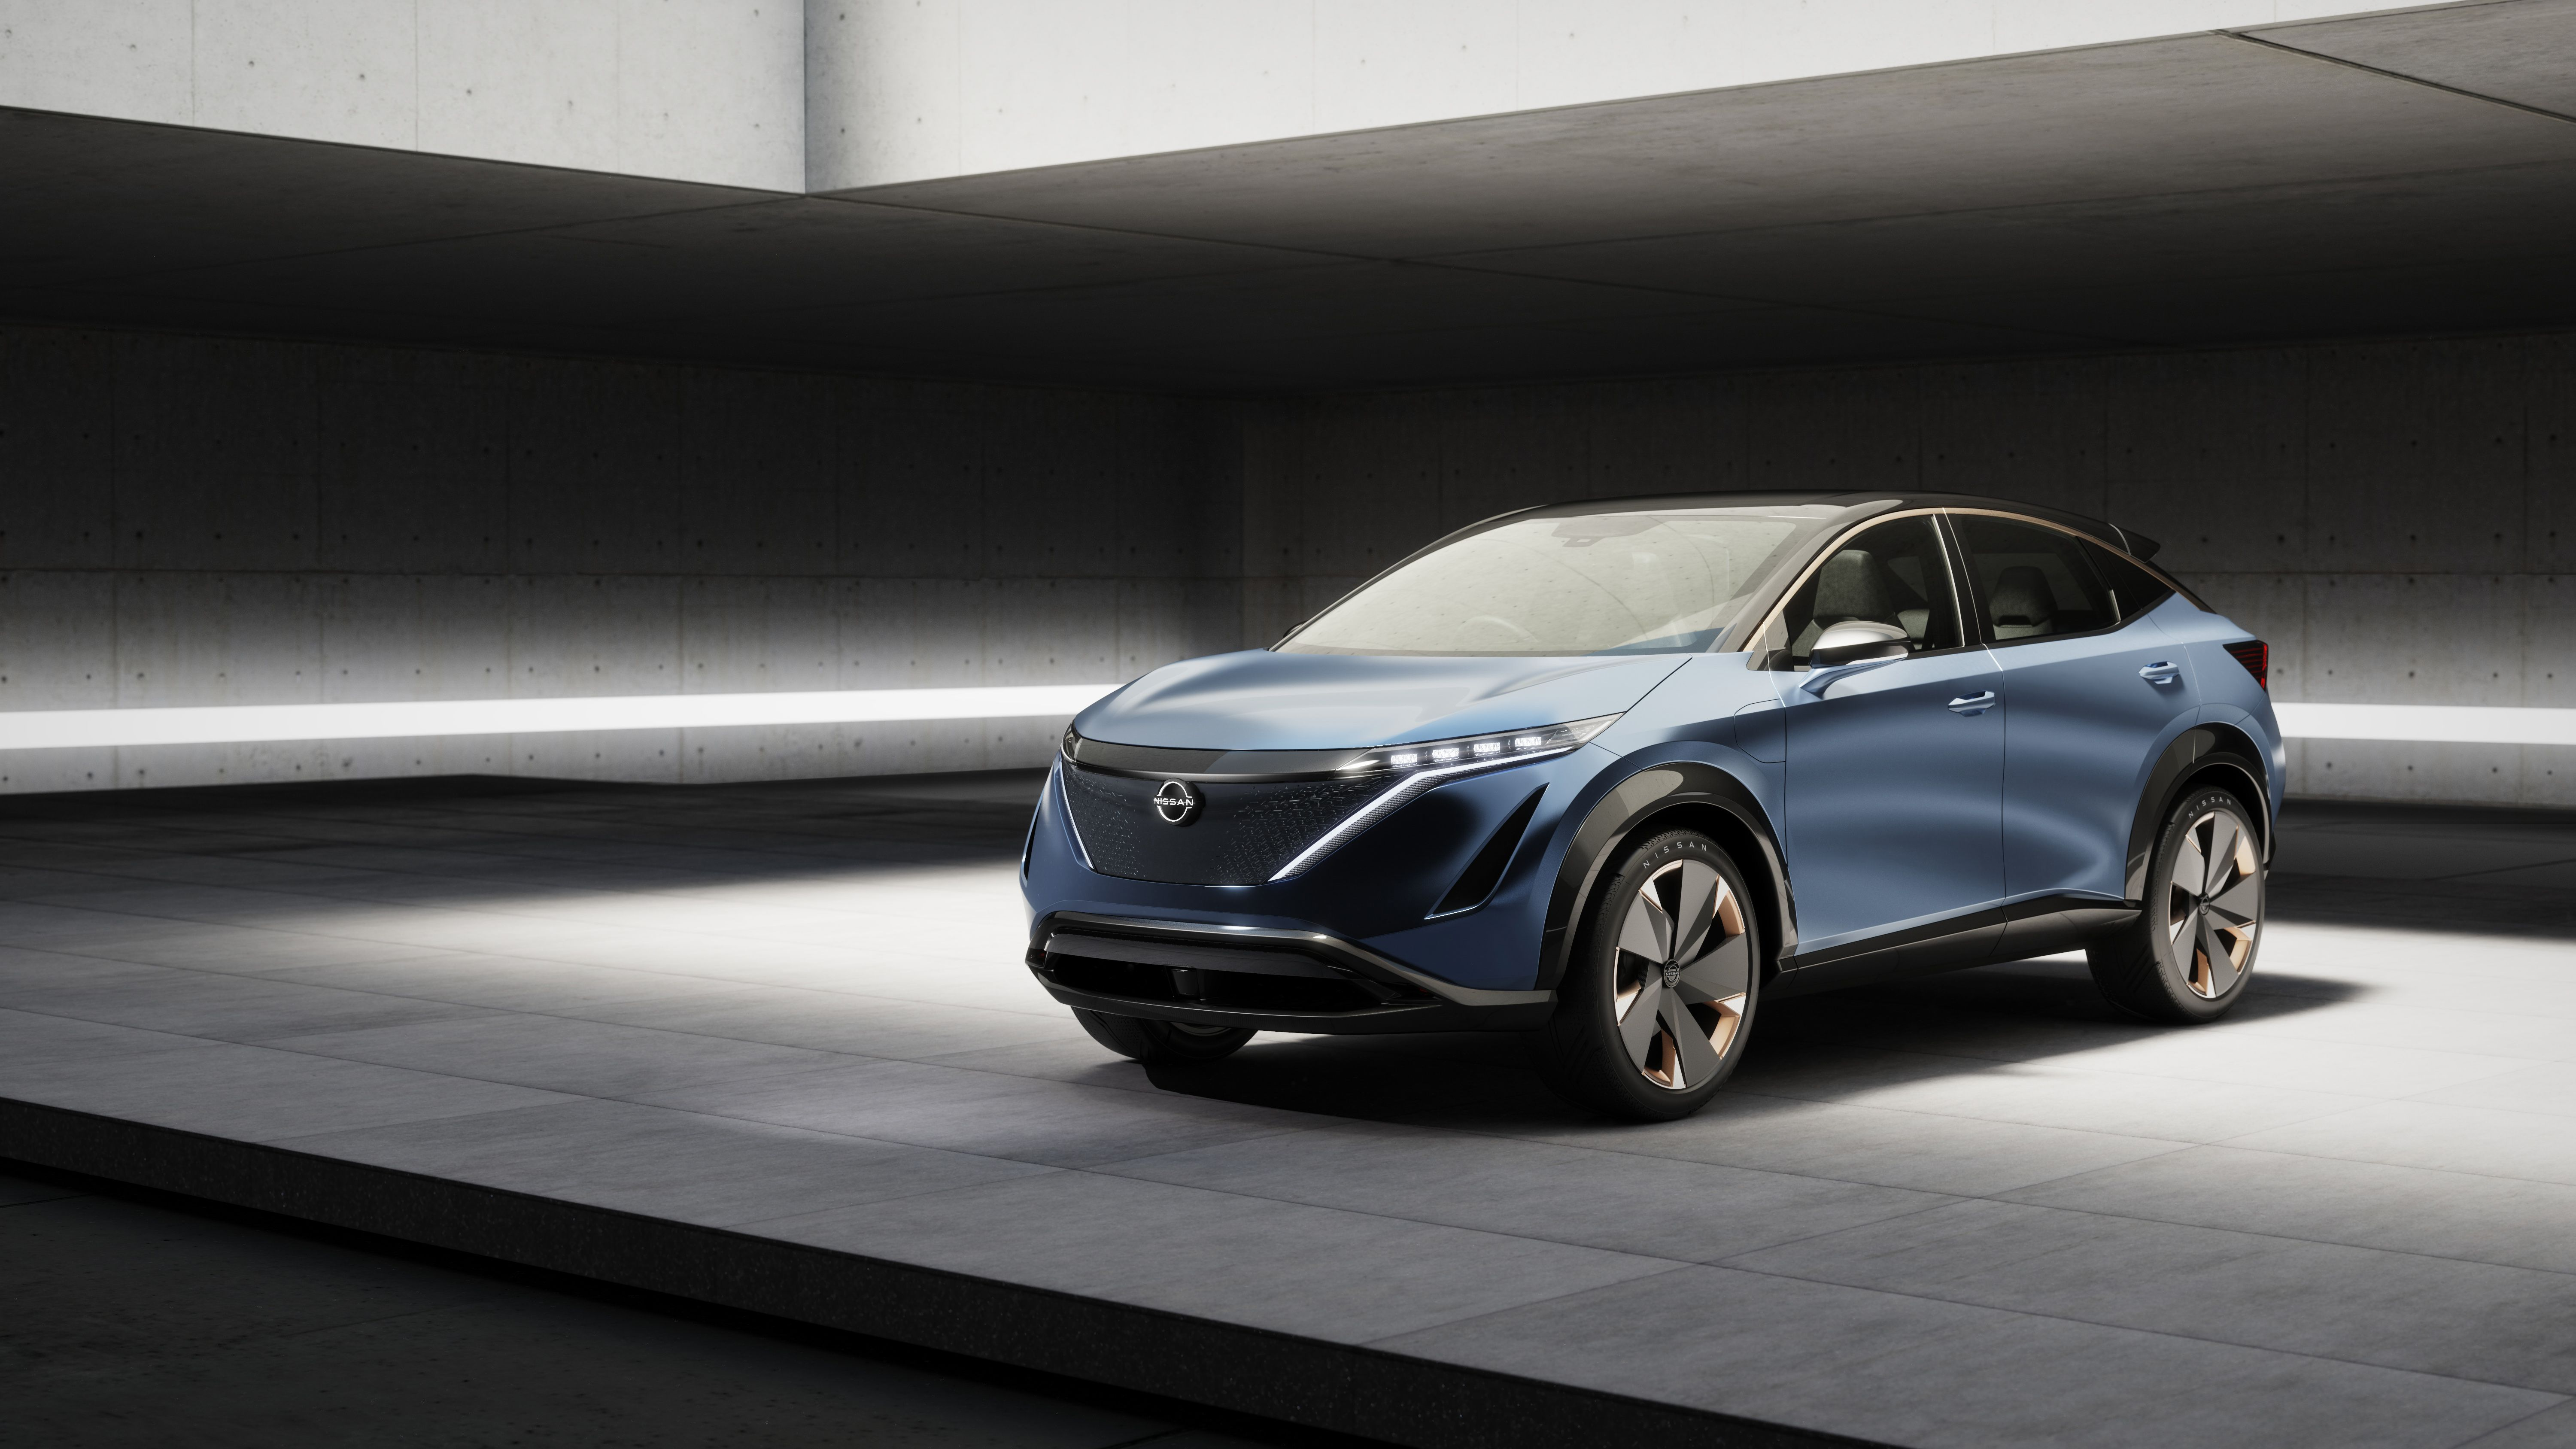 Nissan Ariya Electric Suv Concept Is Destined For Production